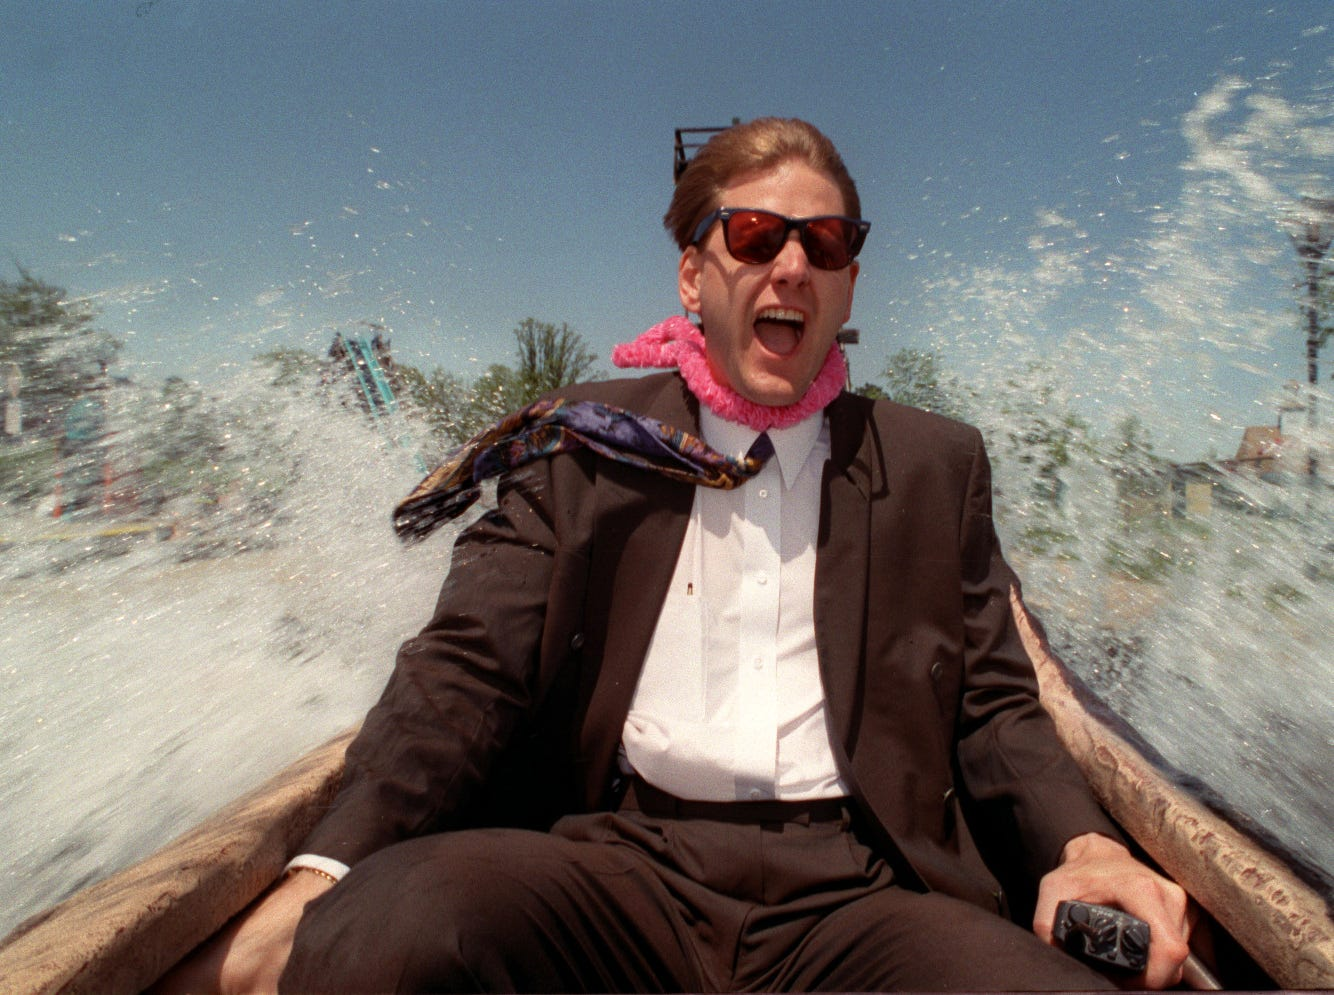 Michael Moodenbaugh, owner of BobLo Island amusement park, rides the Log Flume ride on May 15th 1993.